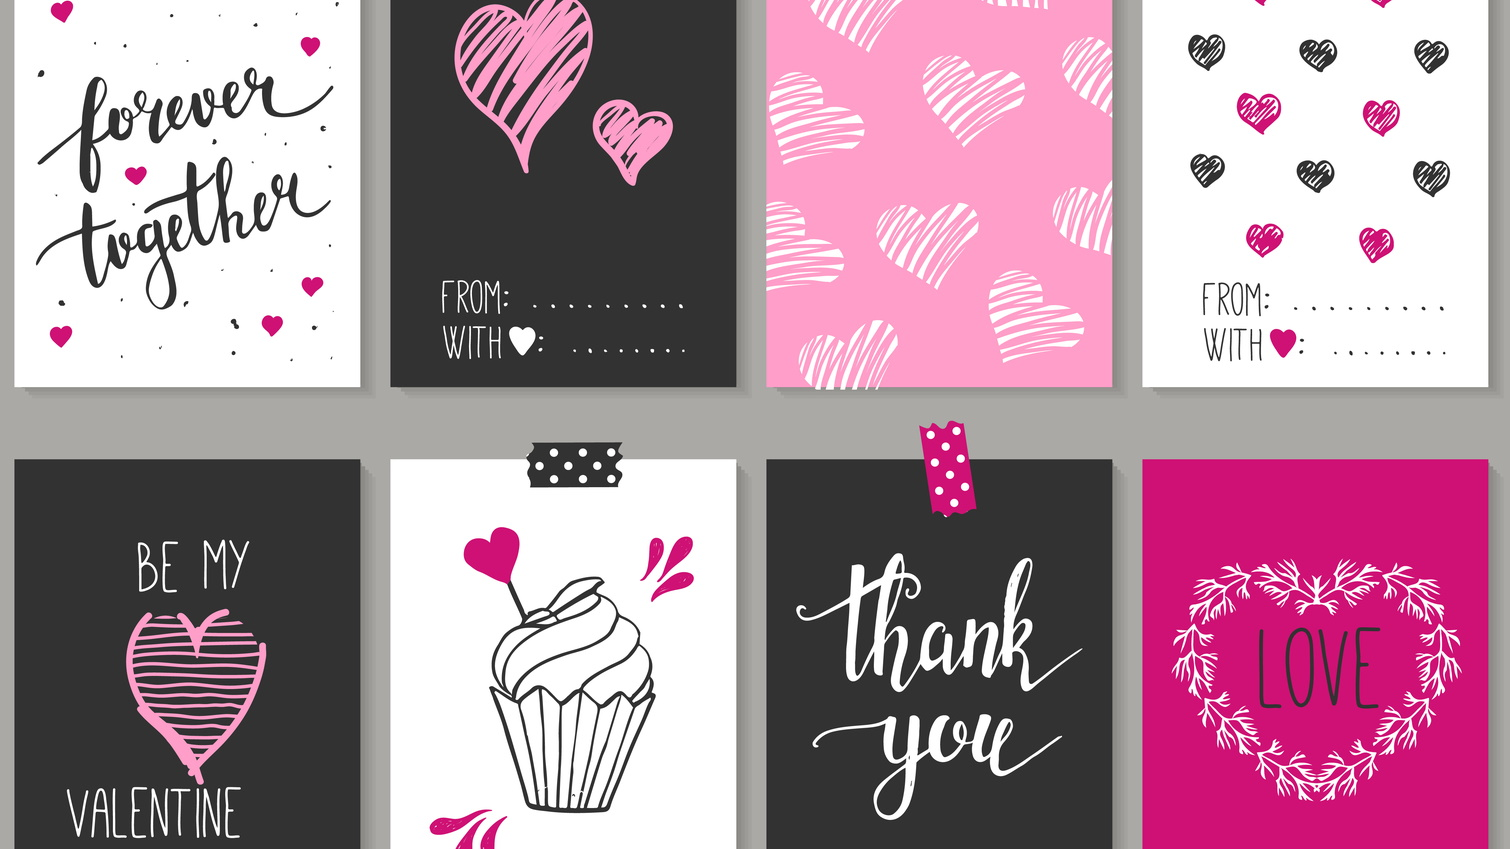 How to make a Valentine's Day card the easy way with a photo card provider